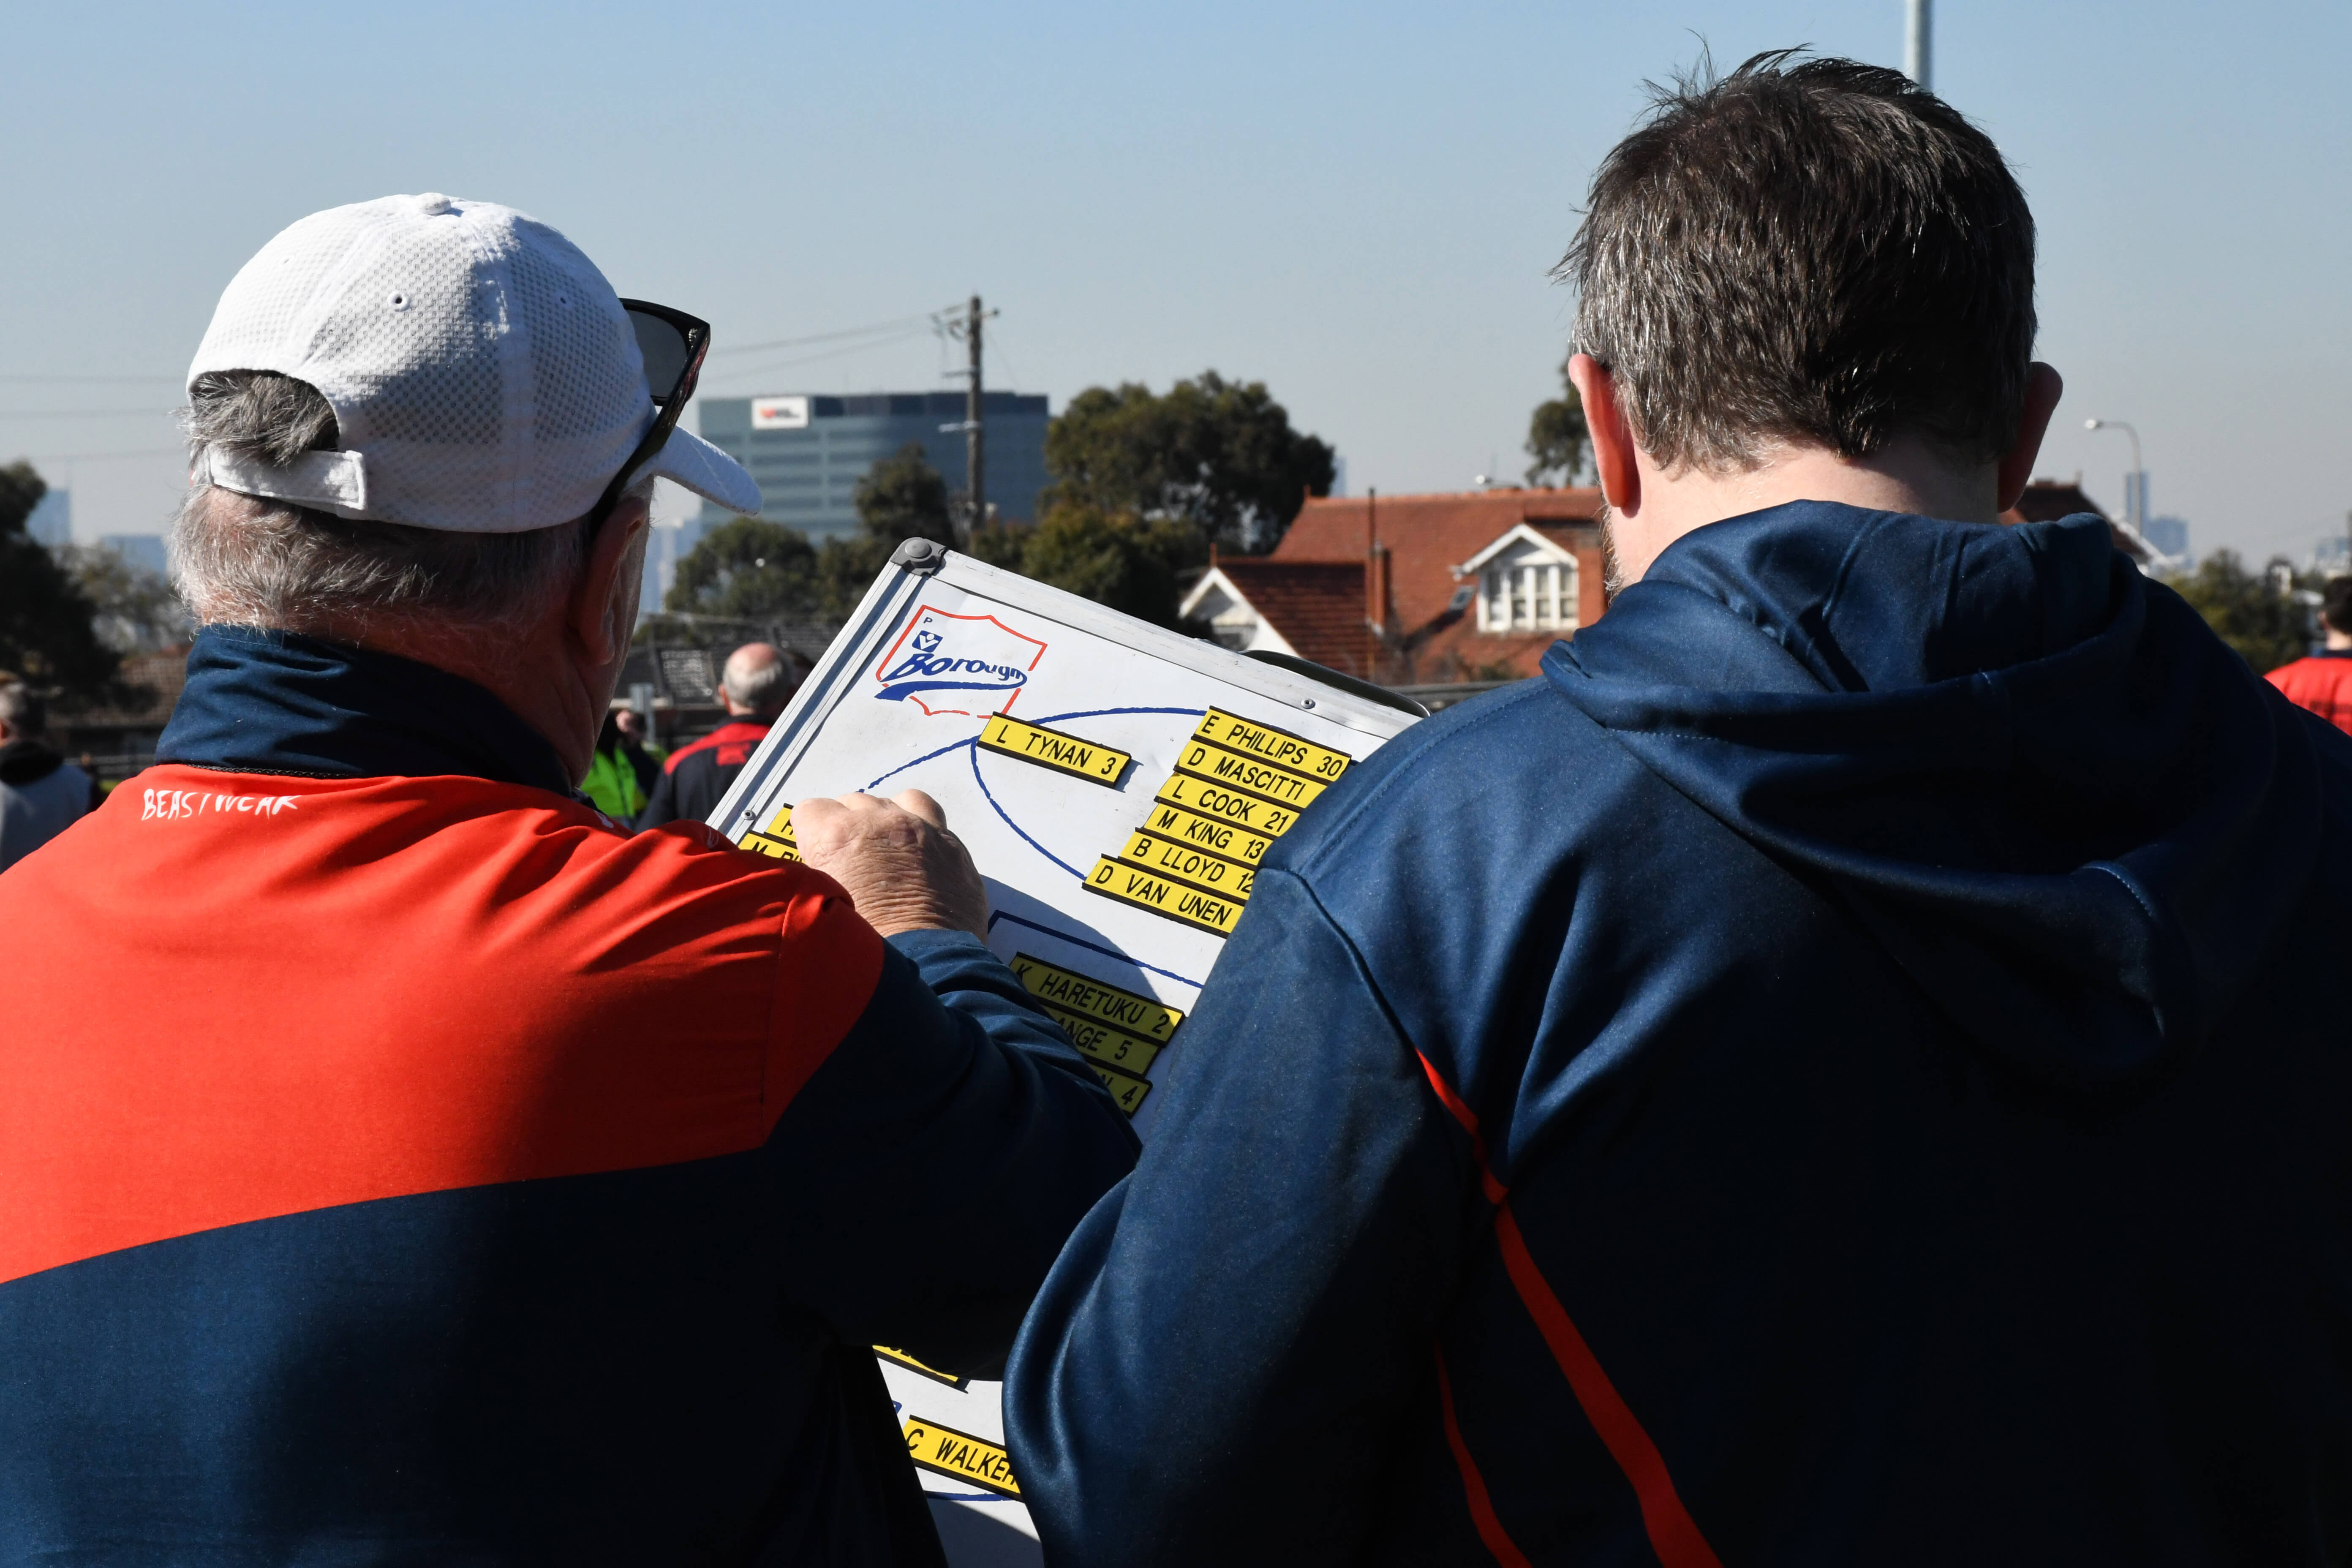 Senior boardman Les Quarrell and coaching assistant Trevor Hurley plan the player interchange board in the quarter time break during the Round 21 clash on 25th August 2018 against Footscray at VU Whitten Oval.